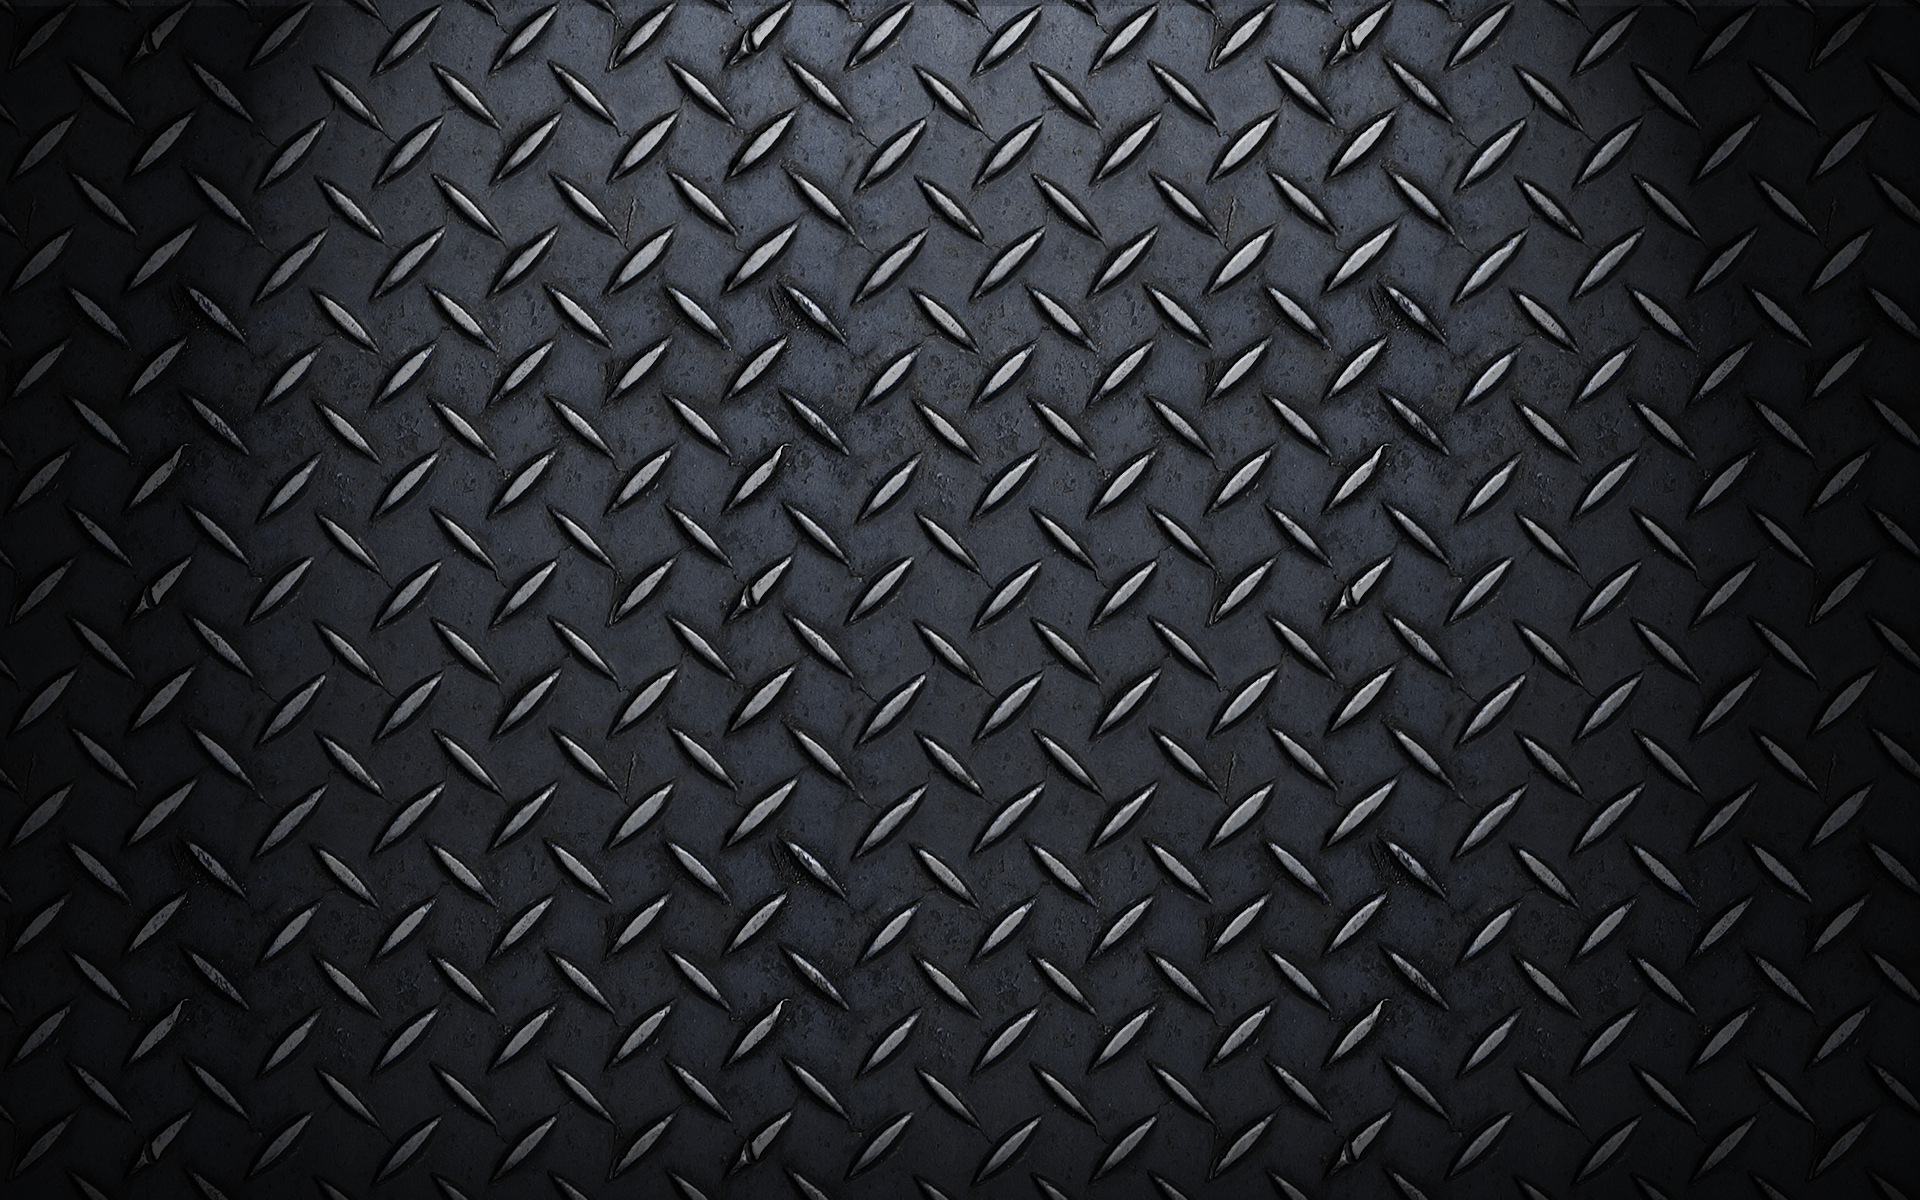 Steel Plate Png - Diamond Plate PNG HD Transparent Diamond Plate HD.PNG Images ...